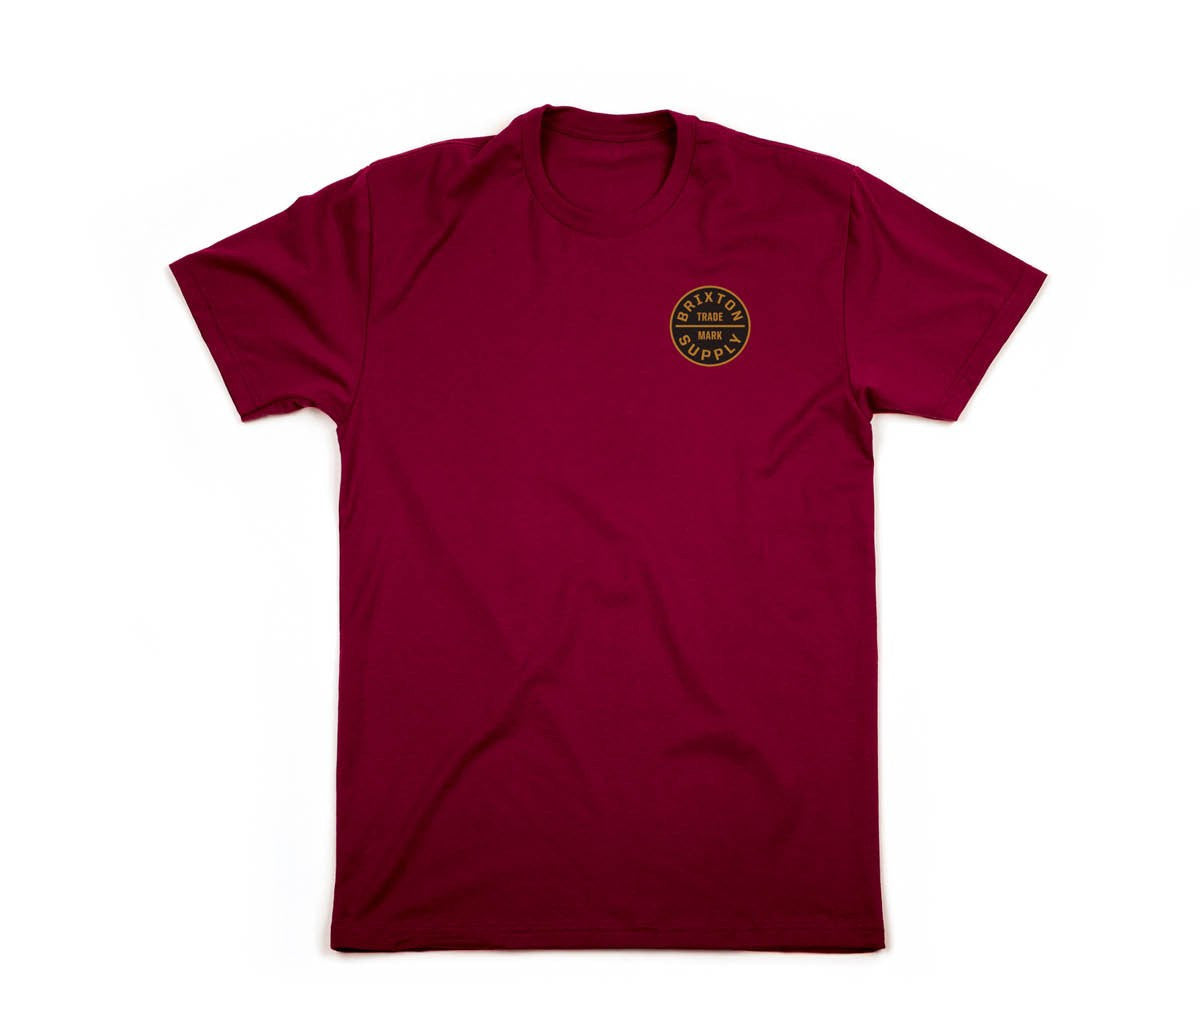 Brixton - Oath Men's S/S Standard Tee, Burgundy/Gold - The Giant Peach